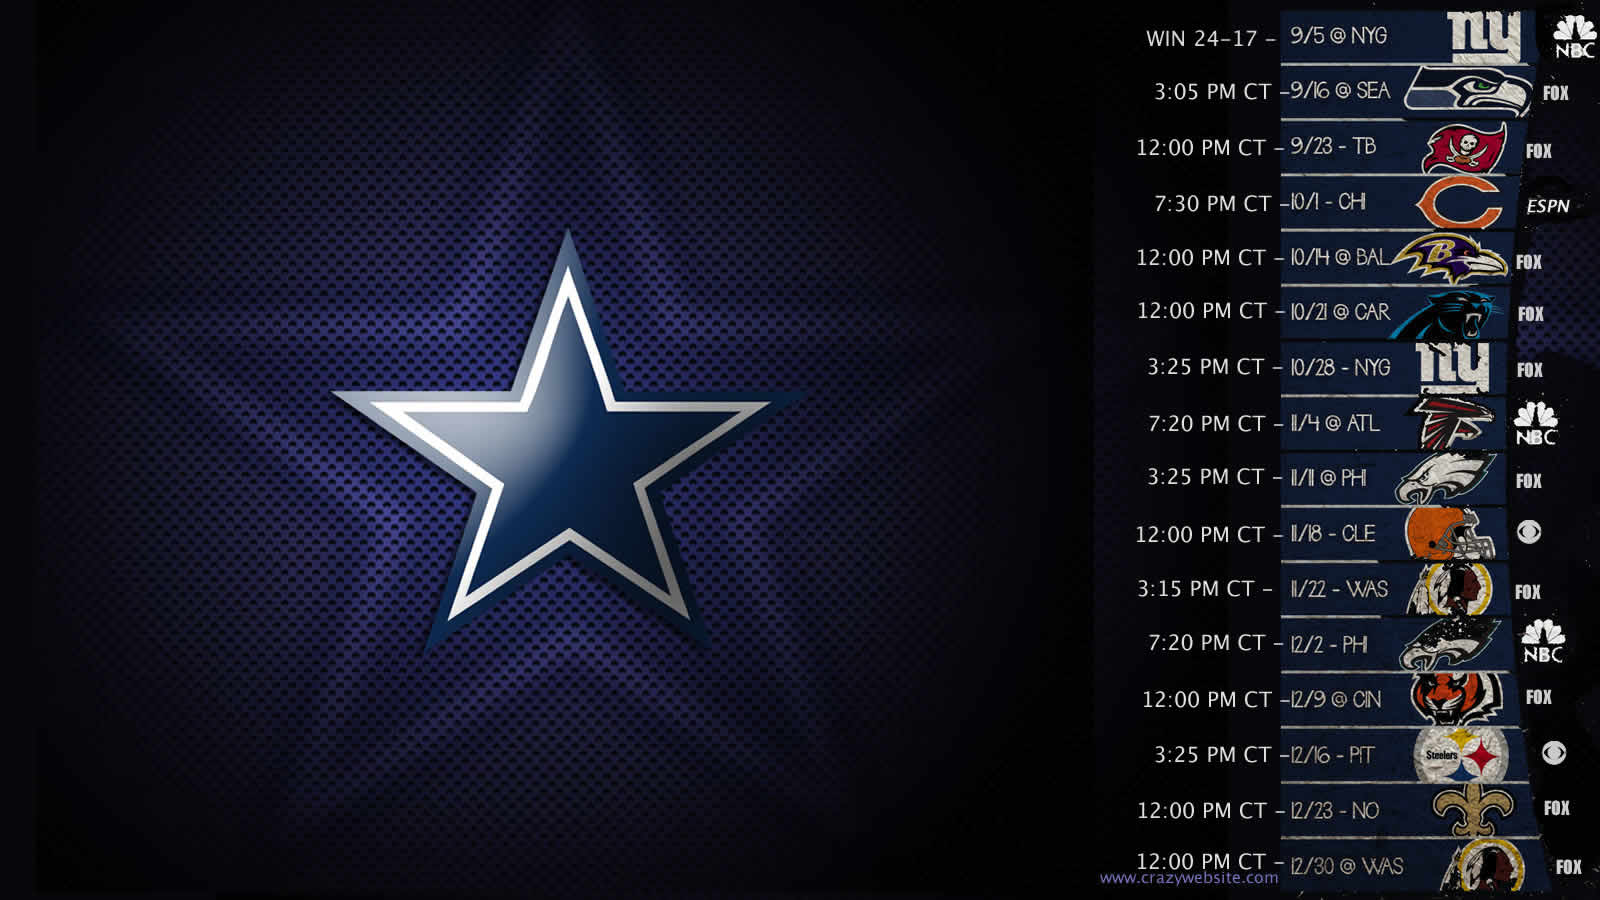 Dallas Cowboys Schedule Wallpaper